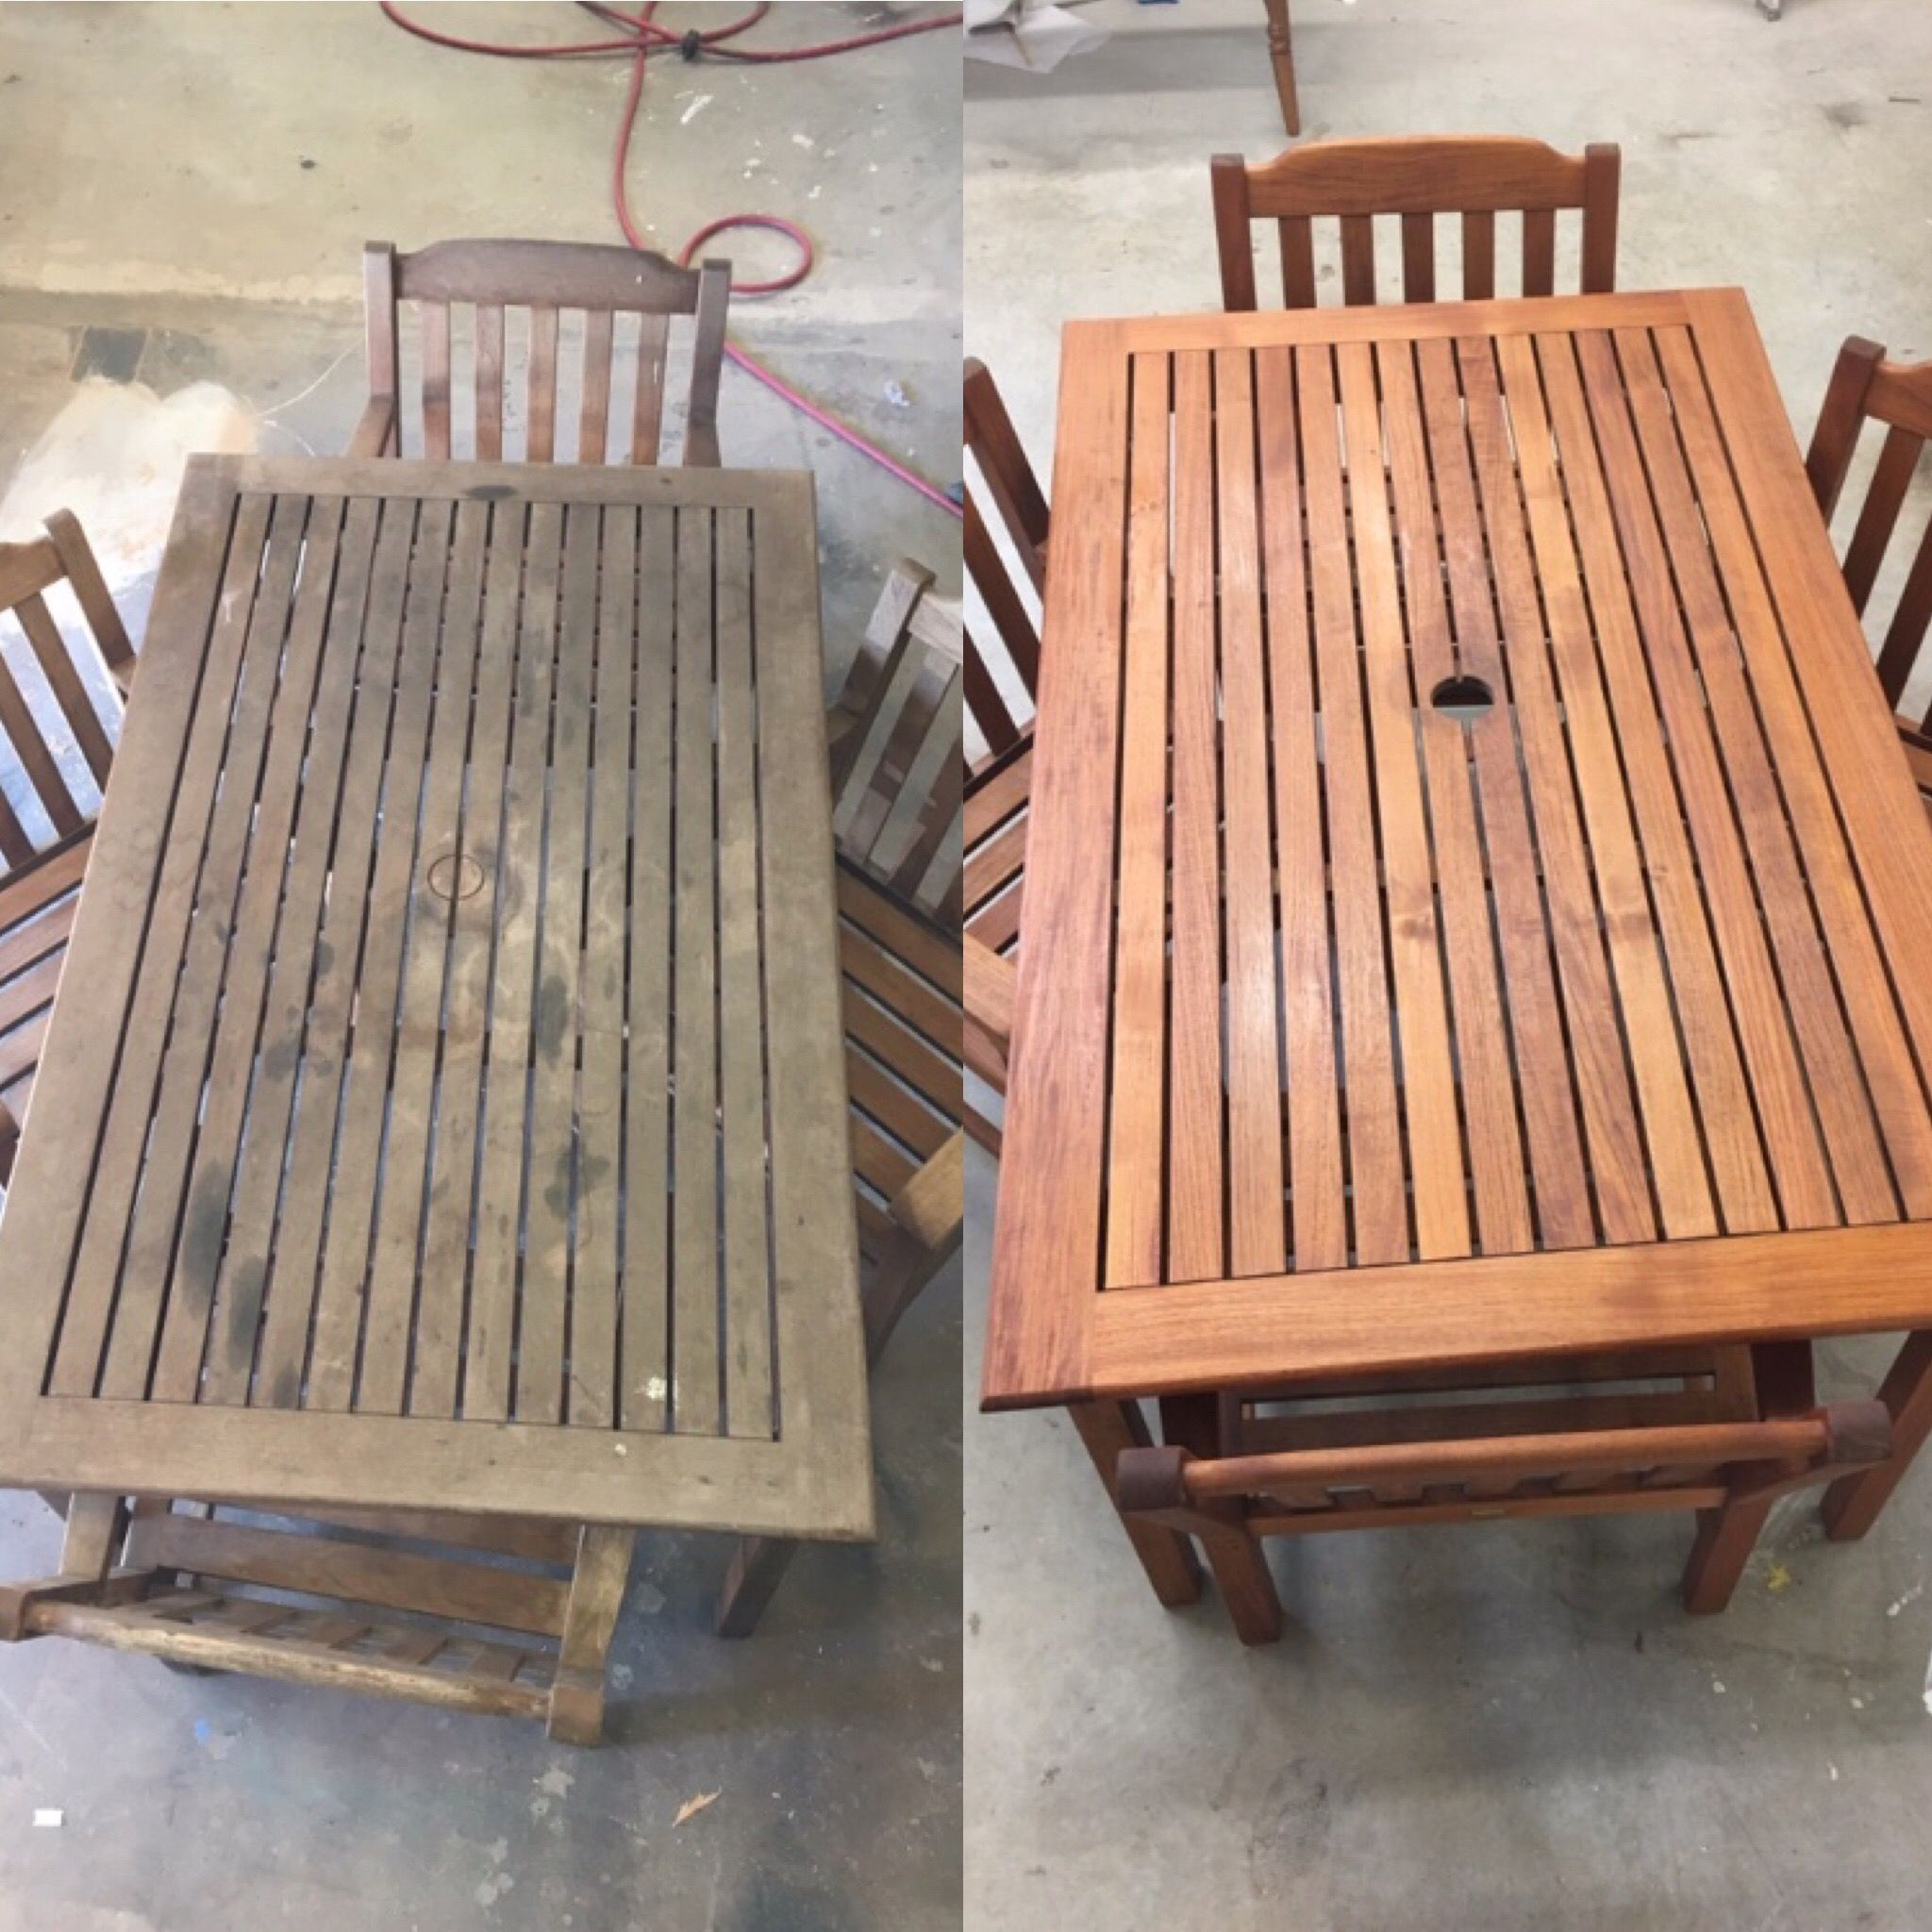 Wow Check Out The Transformation Of This Teak Outdoor Set These Pieces Are Full Of Life Again S Teak Wood Furniture Wood Furniture Quality Outdoor Furniture